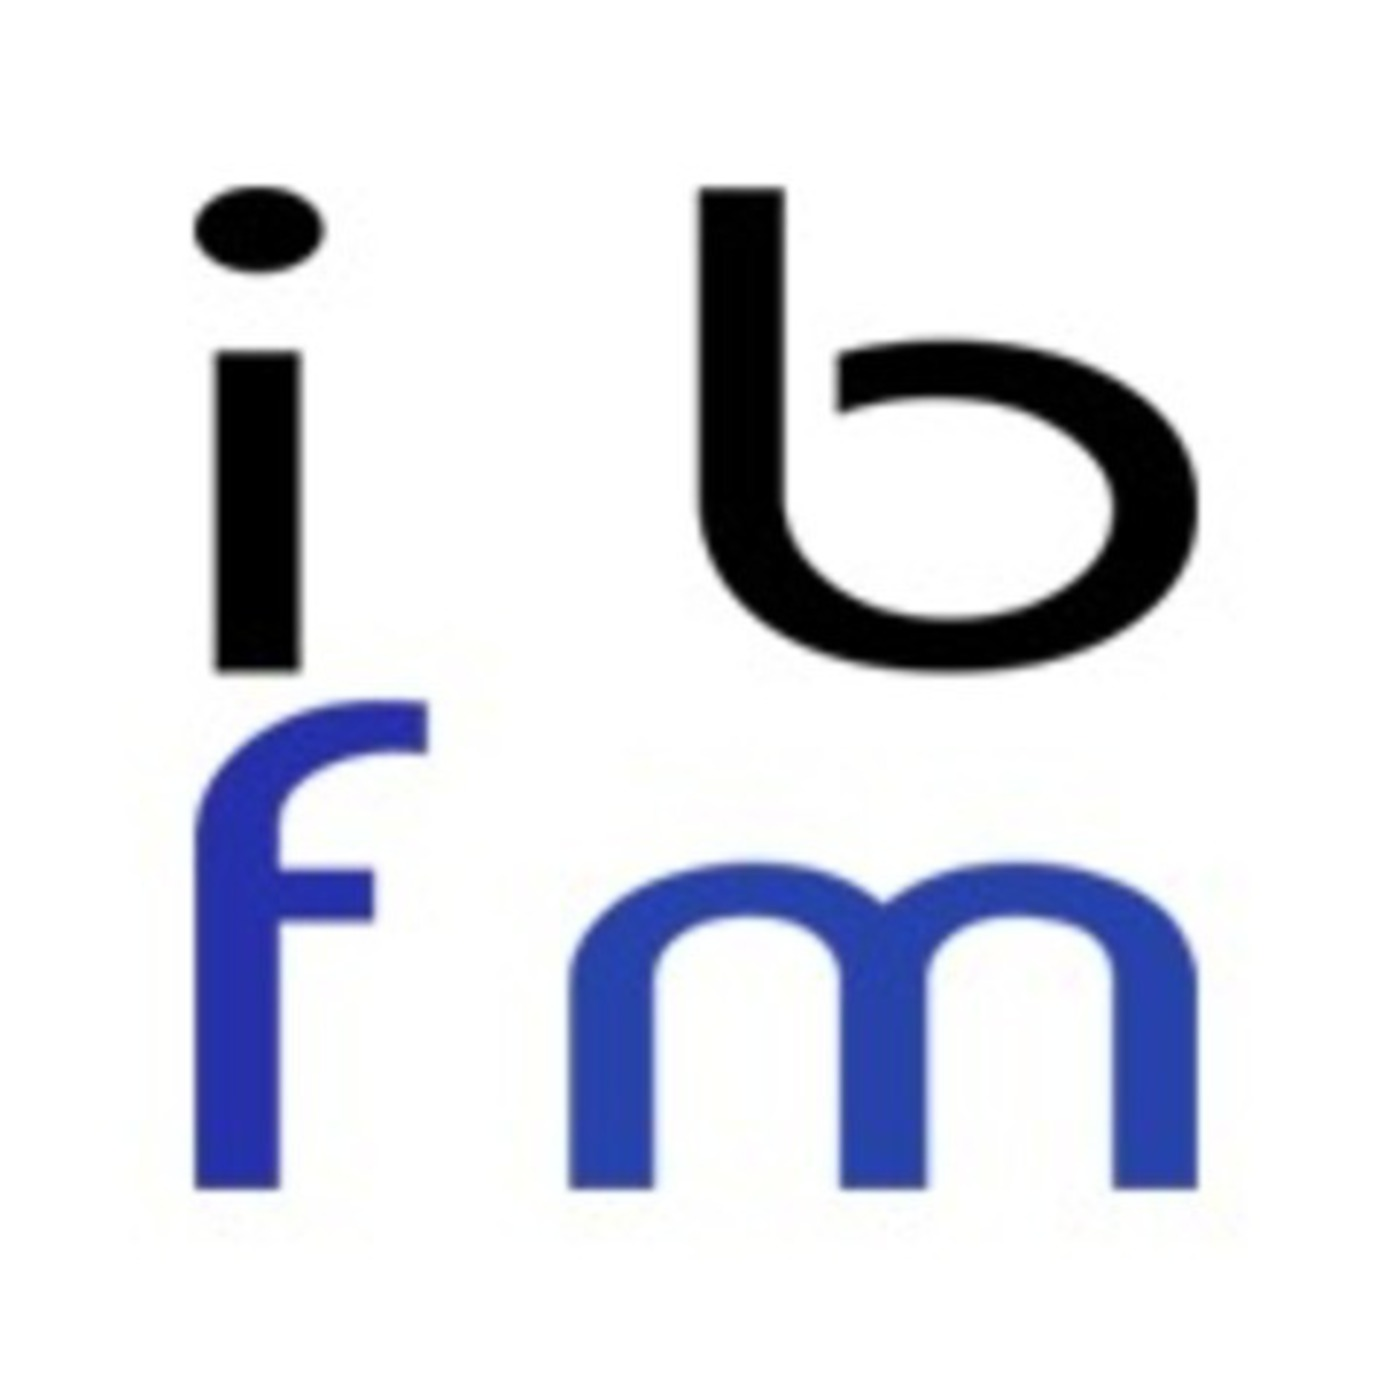 InterBeatsFM.net's Podcast